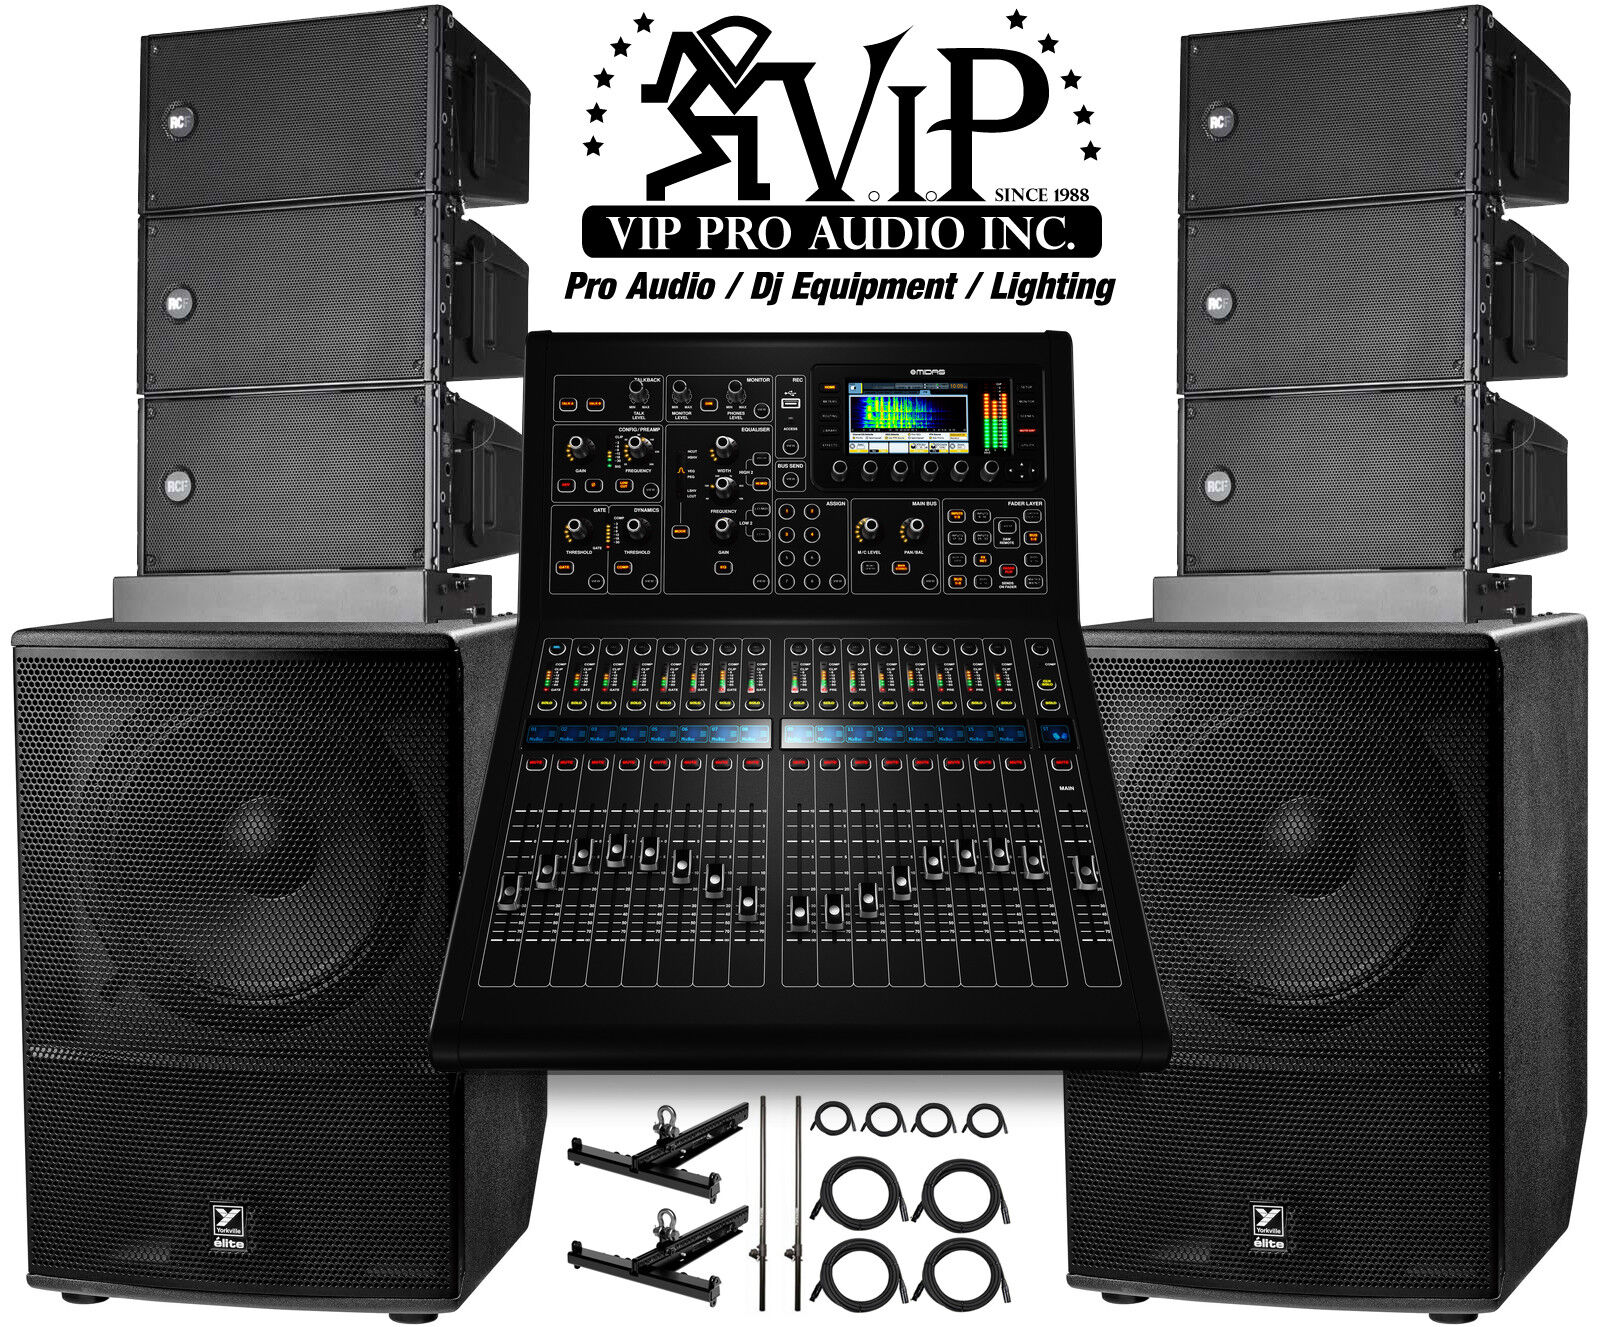 Details about 6x RCF HDL 6-A Line Array + MIDAS M32R + 2x Yorkville ES18P  Subwoofers + FLYBARS